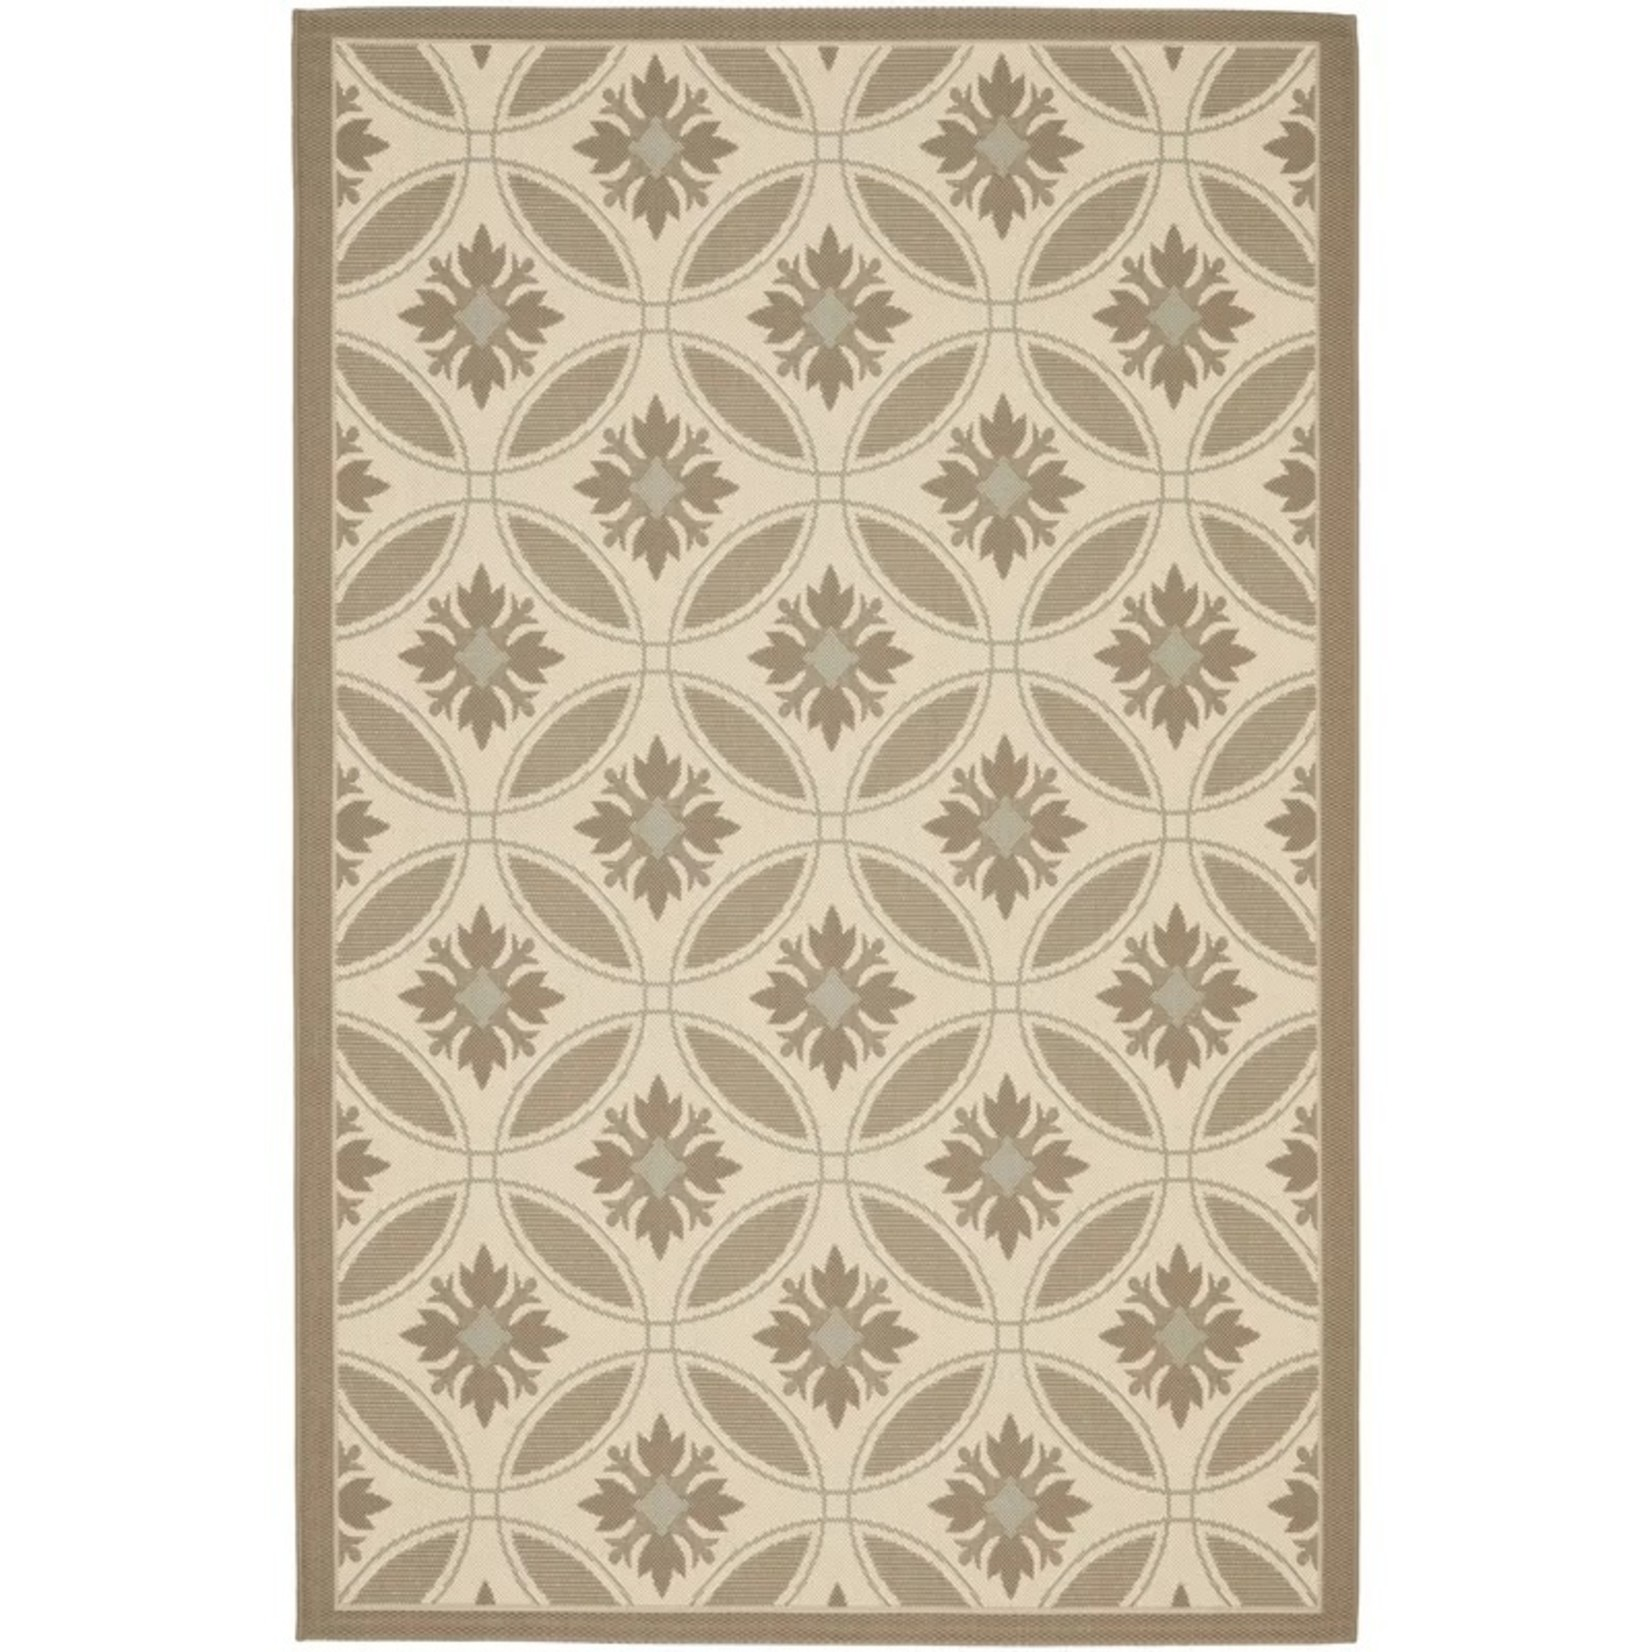 *8' x 10'2 - Herefordshire Floral Brown/Tan Indoor / Outdoor Area Rug